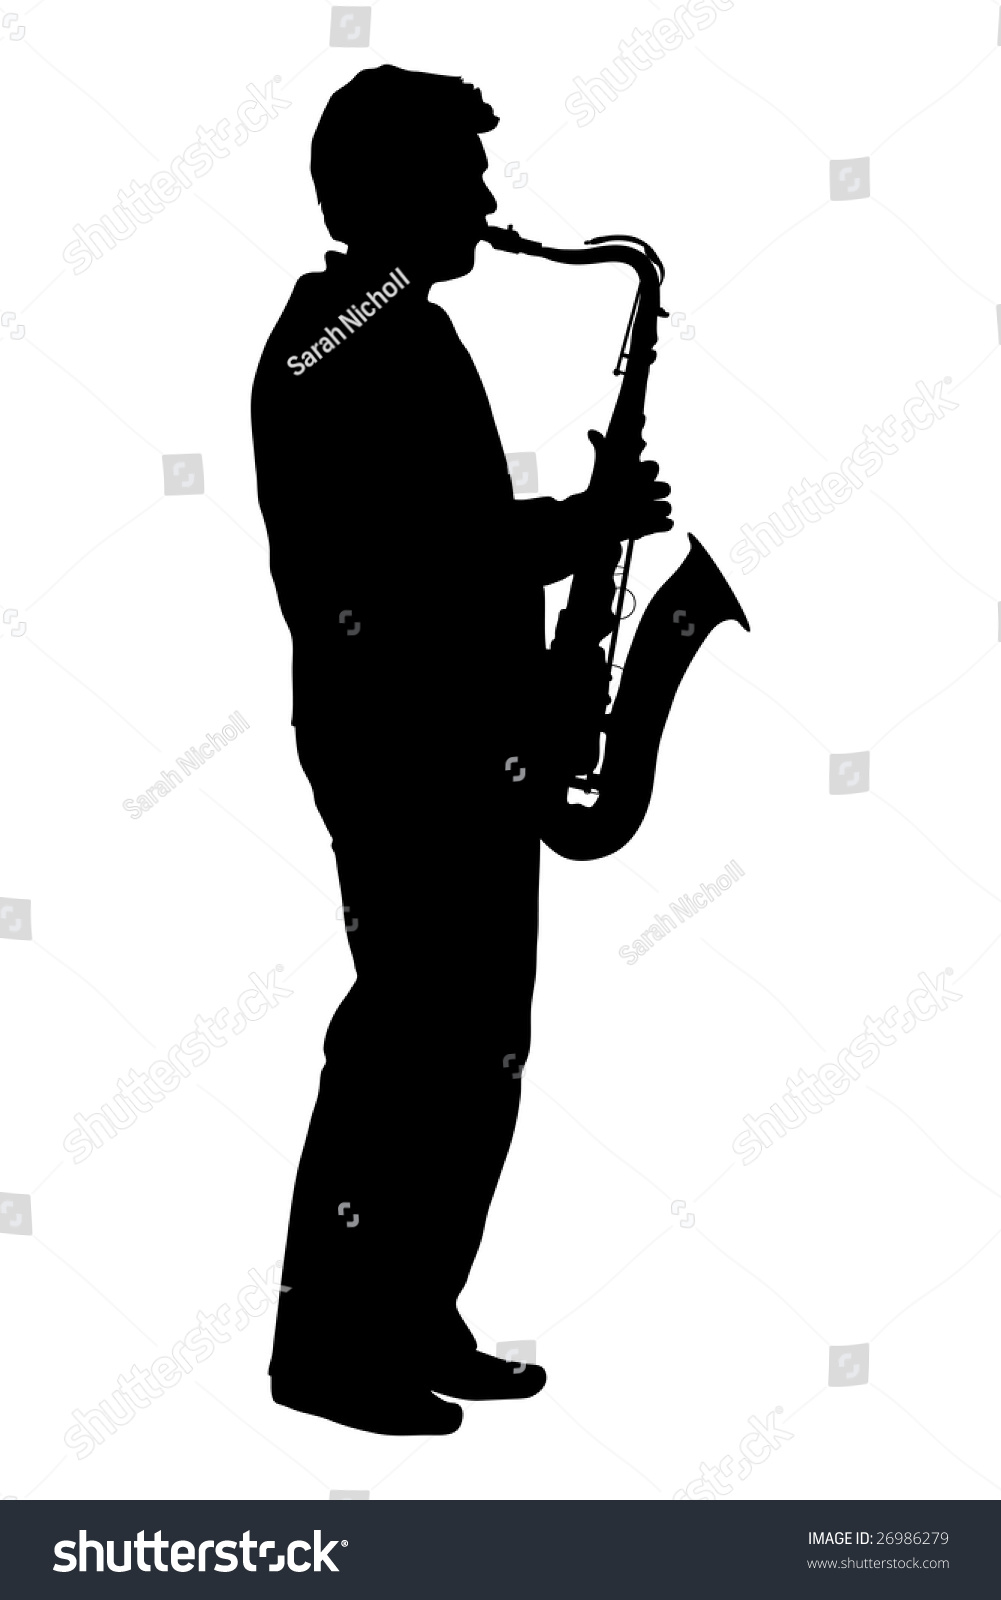 Silhouette Man Playing Saxophone Stock Illustration ...